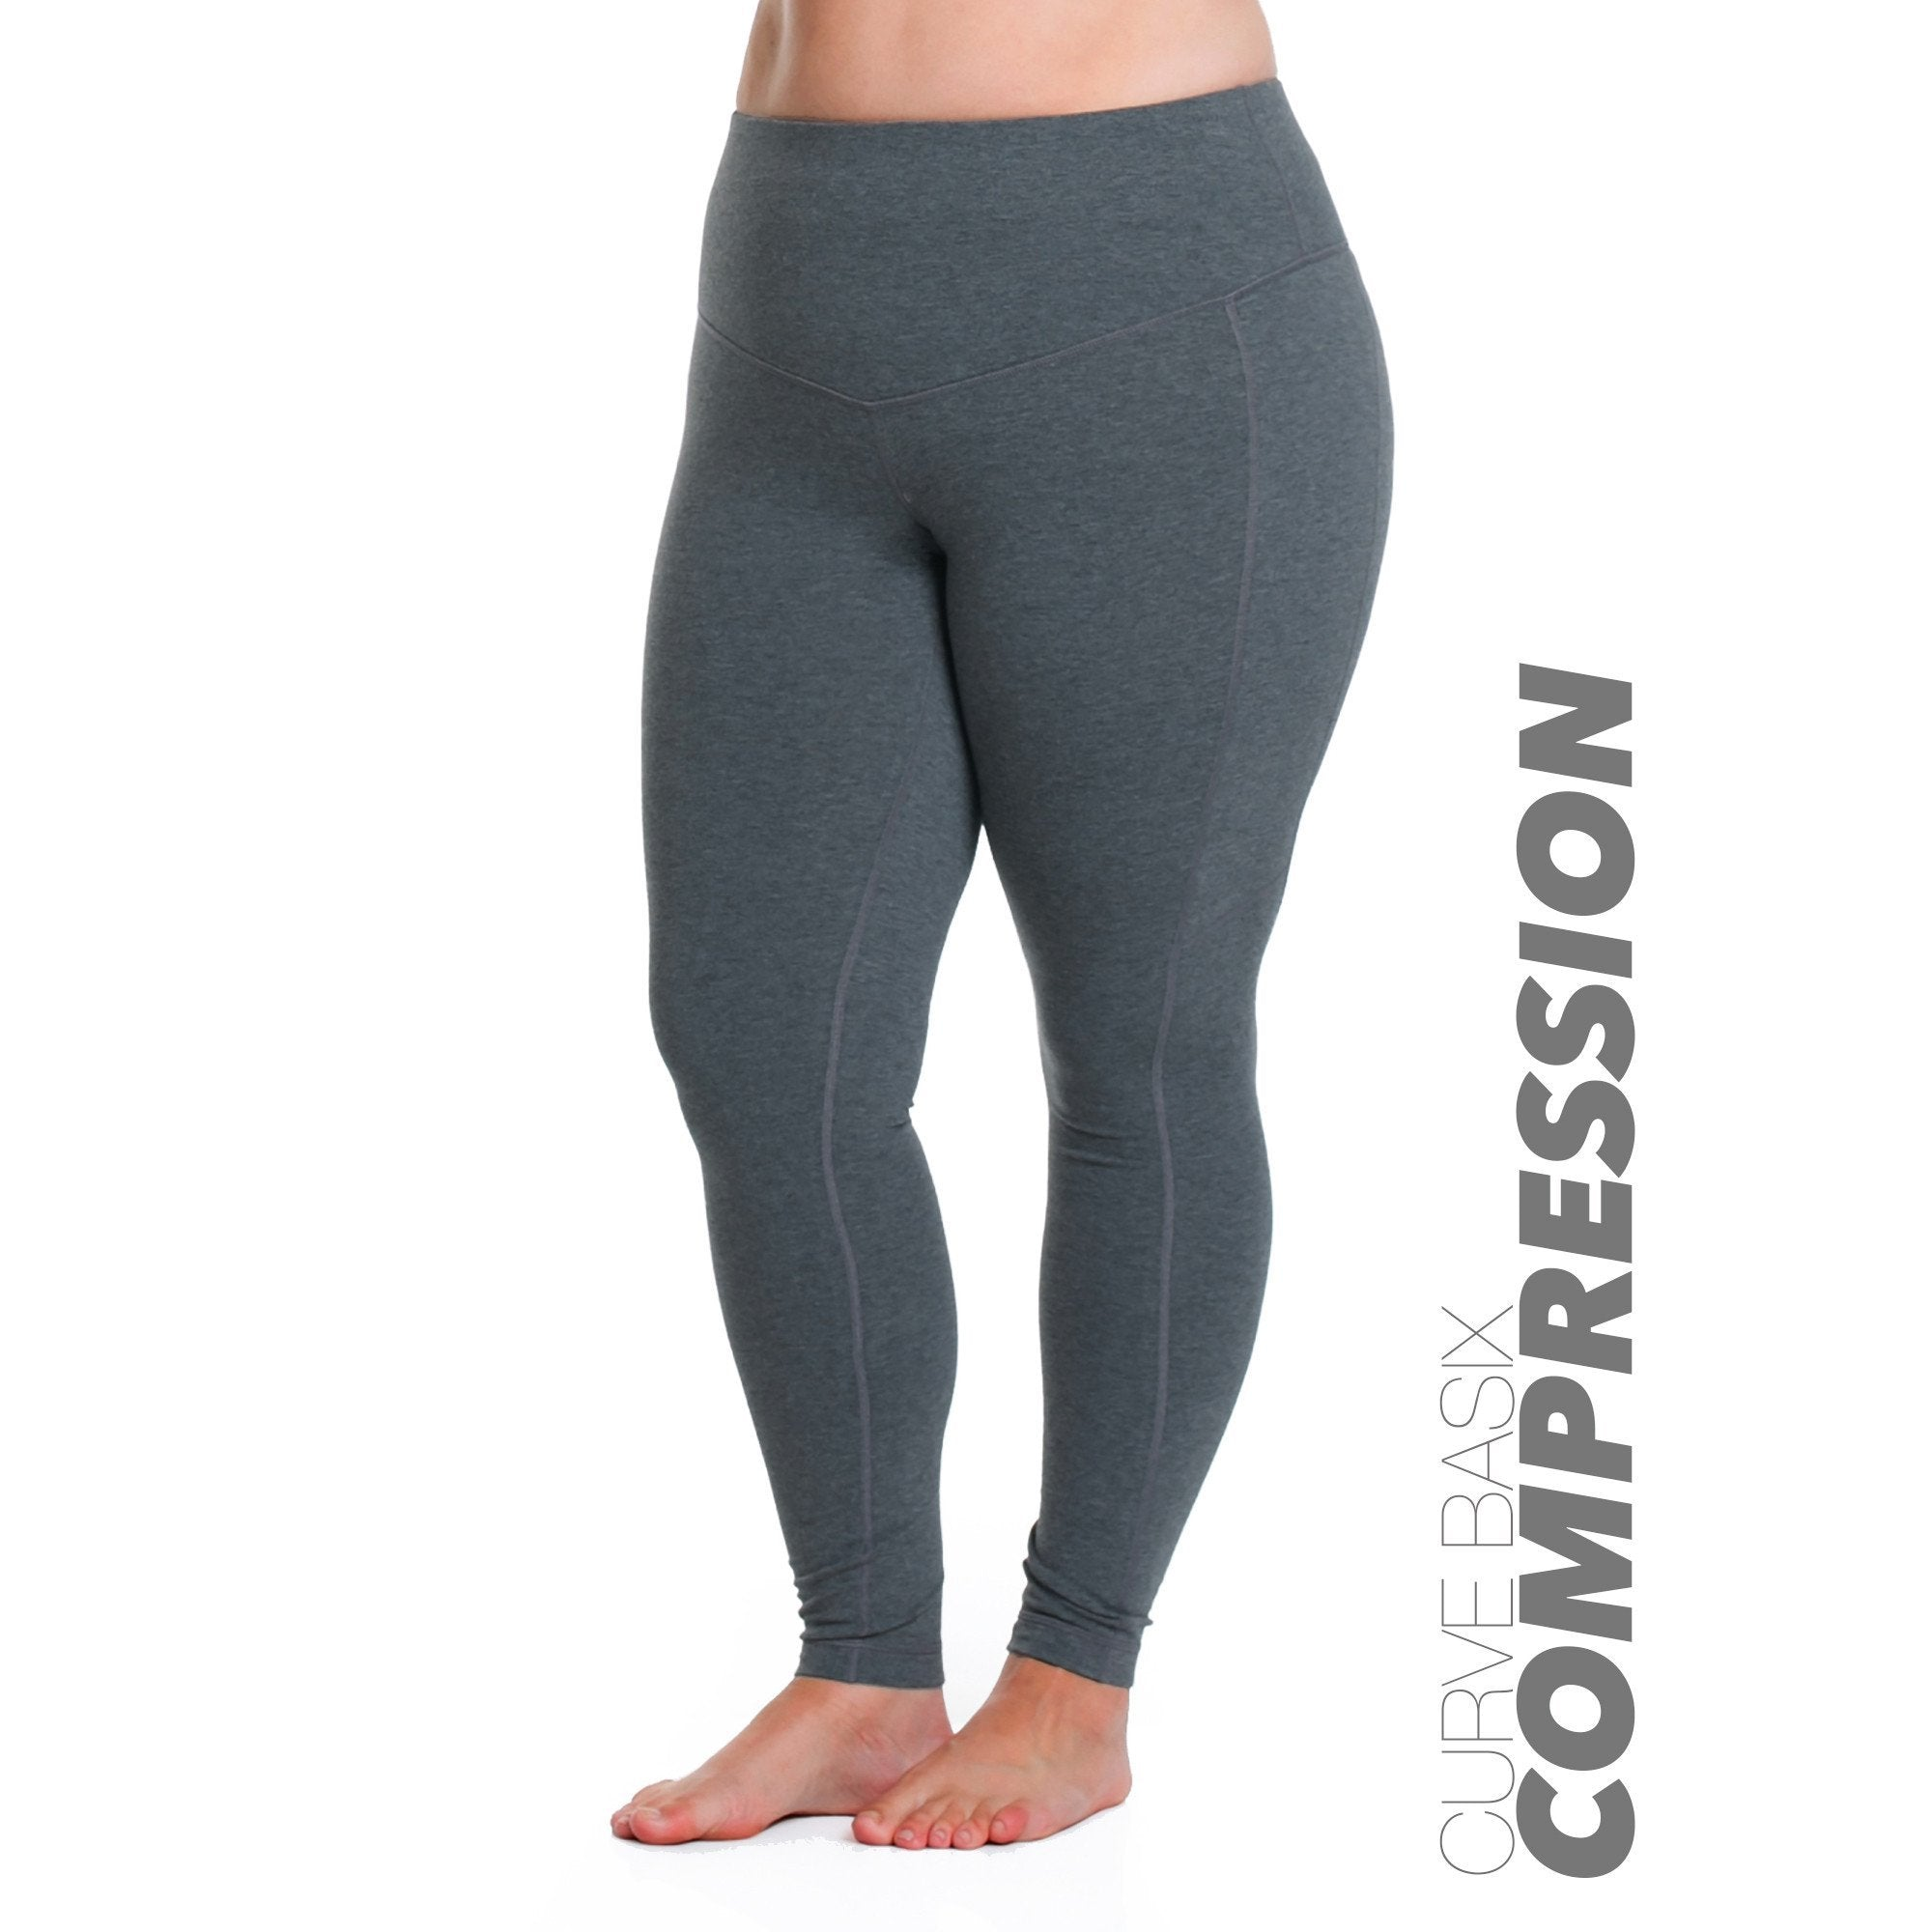 9e7f74527ed8e Curve Basix Compression Legging - Rainbeau Curves, 14/16 / Charcoal,  activewear,